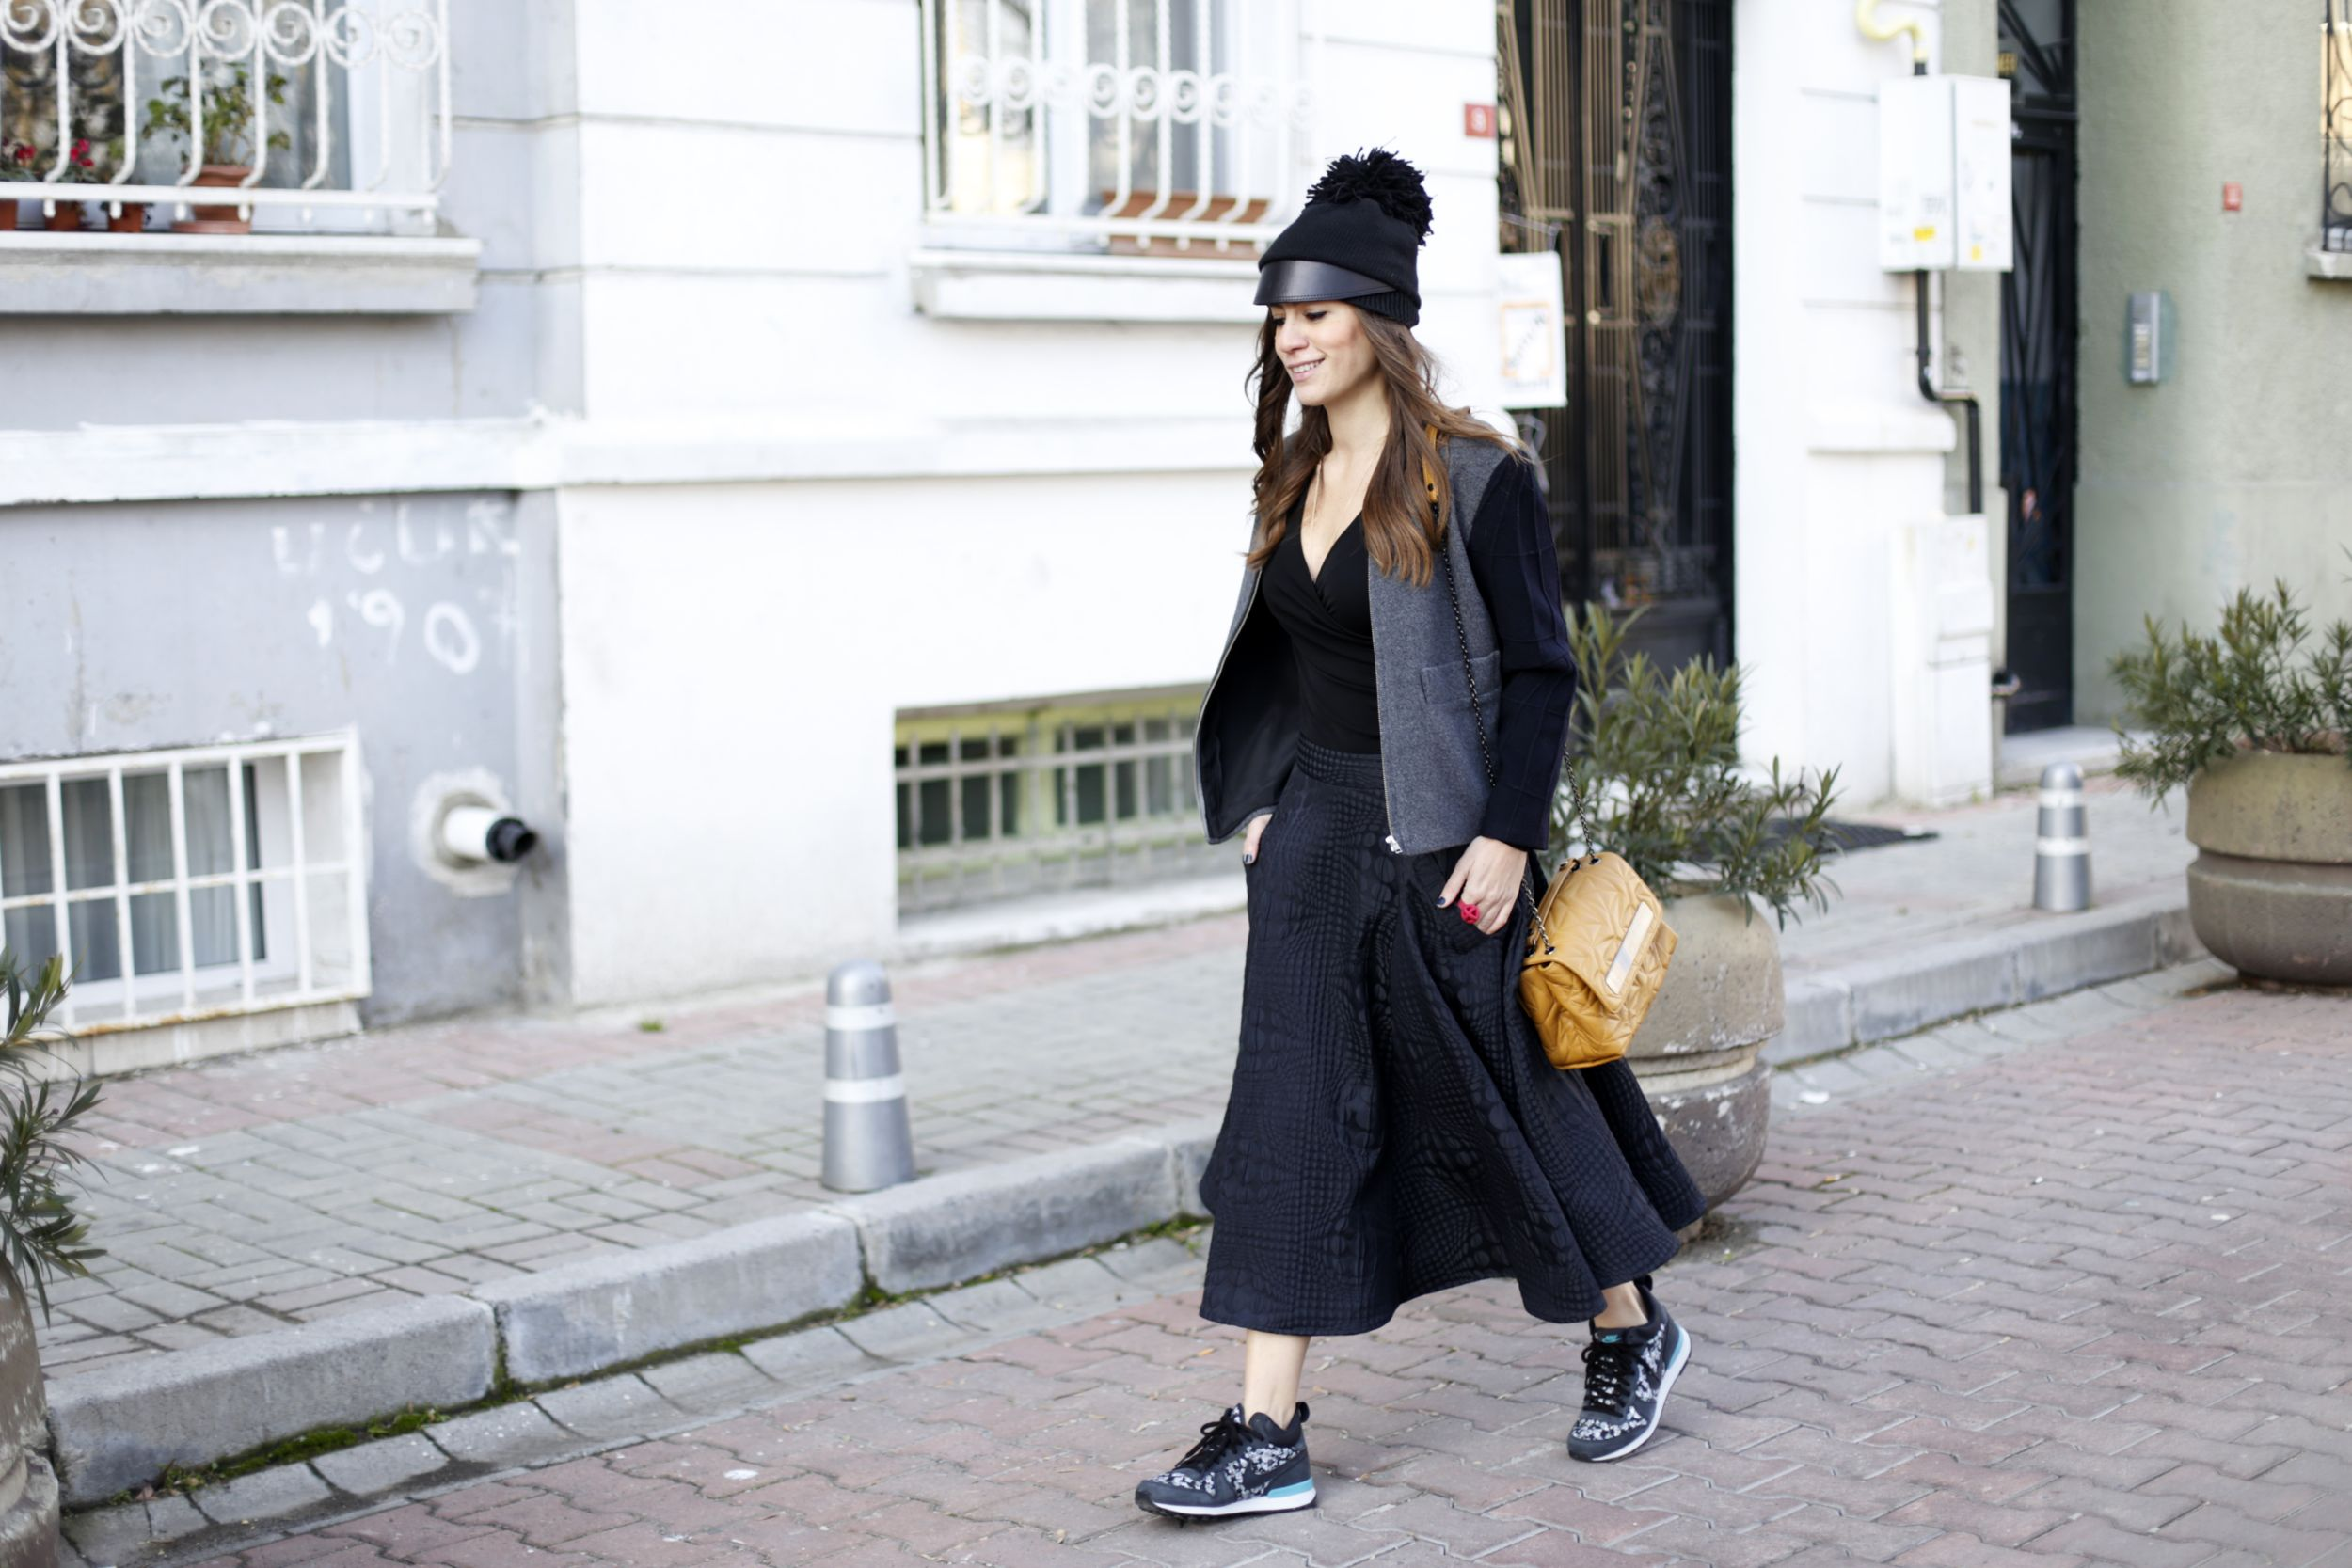 billur saatci, turkish fashion bloggers, turkish style bloggers,  street fashion, off ne giysem, mehtap elaidi, aslı filinta, zeynep tosun, beymen club, misela,  nike x liberty  collection, sneakers, nike airmax,